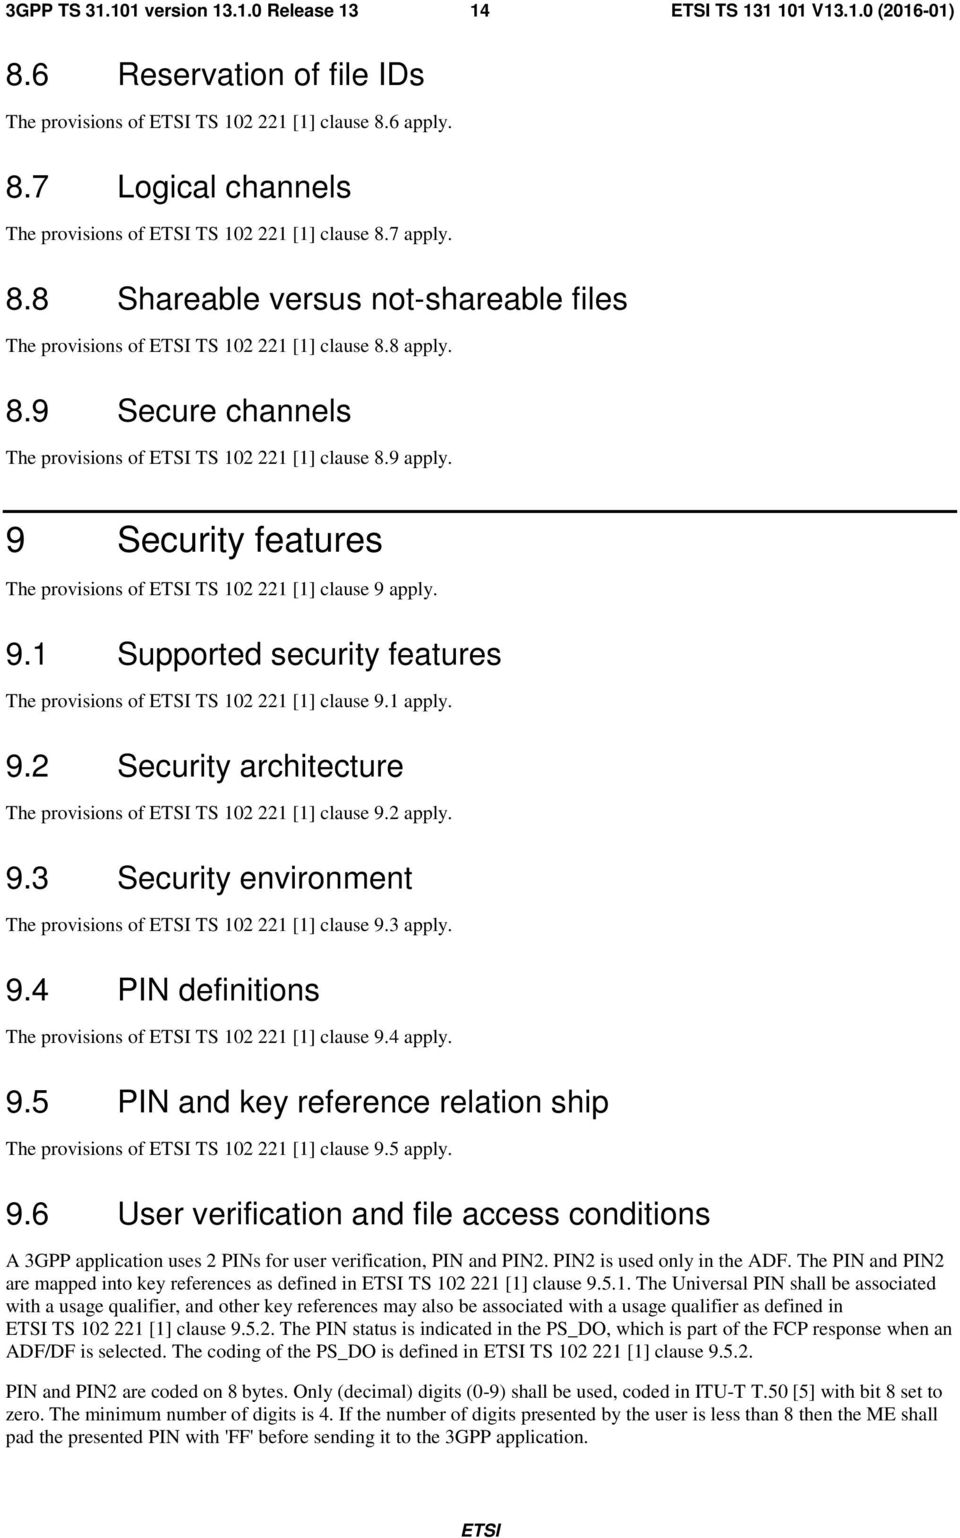 1 apply. 9.2 Security architecture The provisions of TS 102 221 [1] clause 9.2 apply. 9.3 Security environment The provisions of TS 102 221 [1] clause 9.3 apply. 9.4 PIN definitions The provisions of TS 102 221 [1] clause 9.